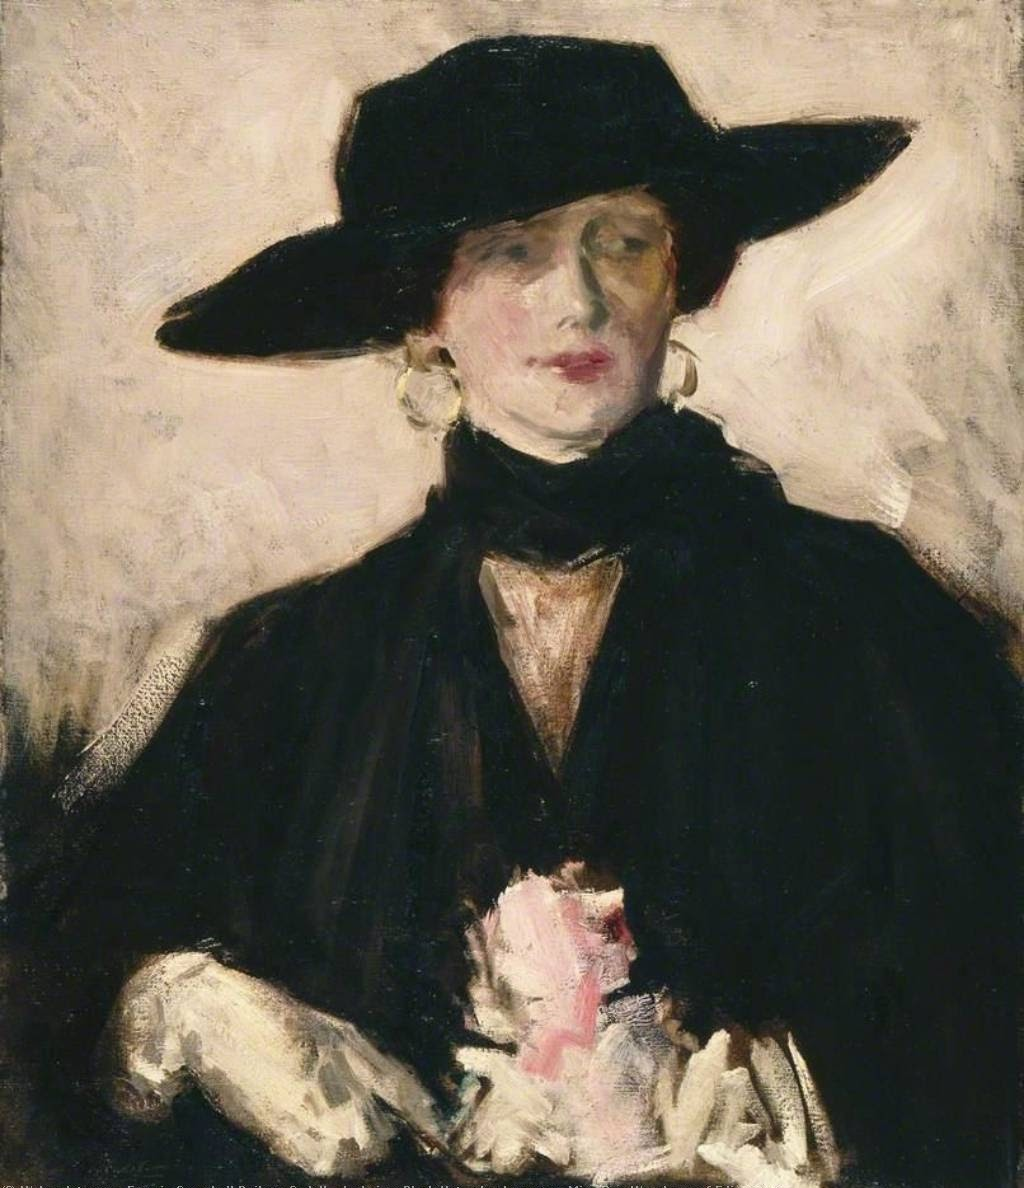 Francis Cadell Lady in a  lack Hat also known as Miss Don Wauchope of Edinburgh